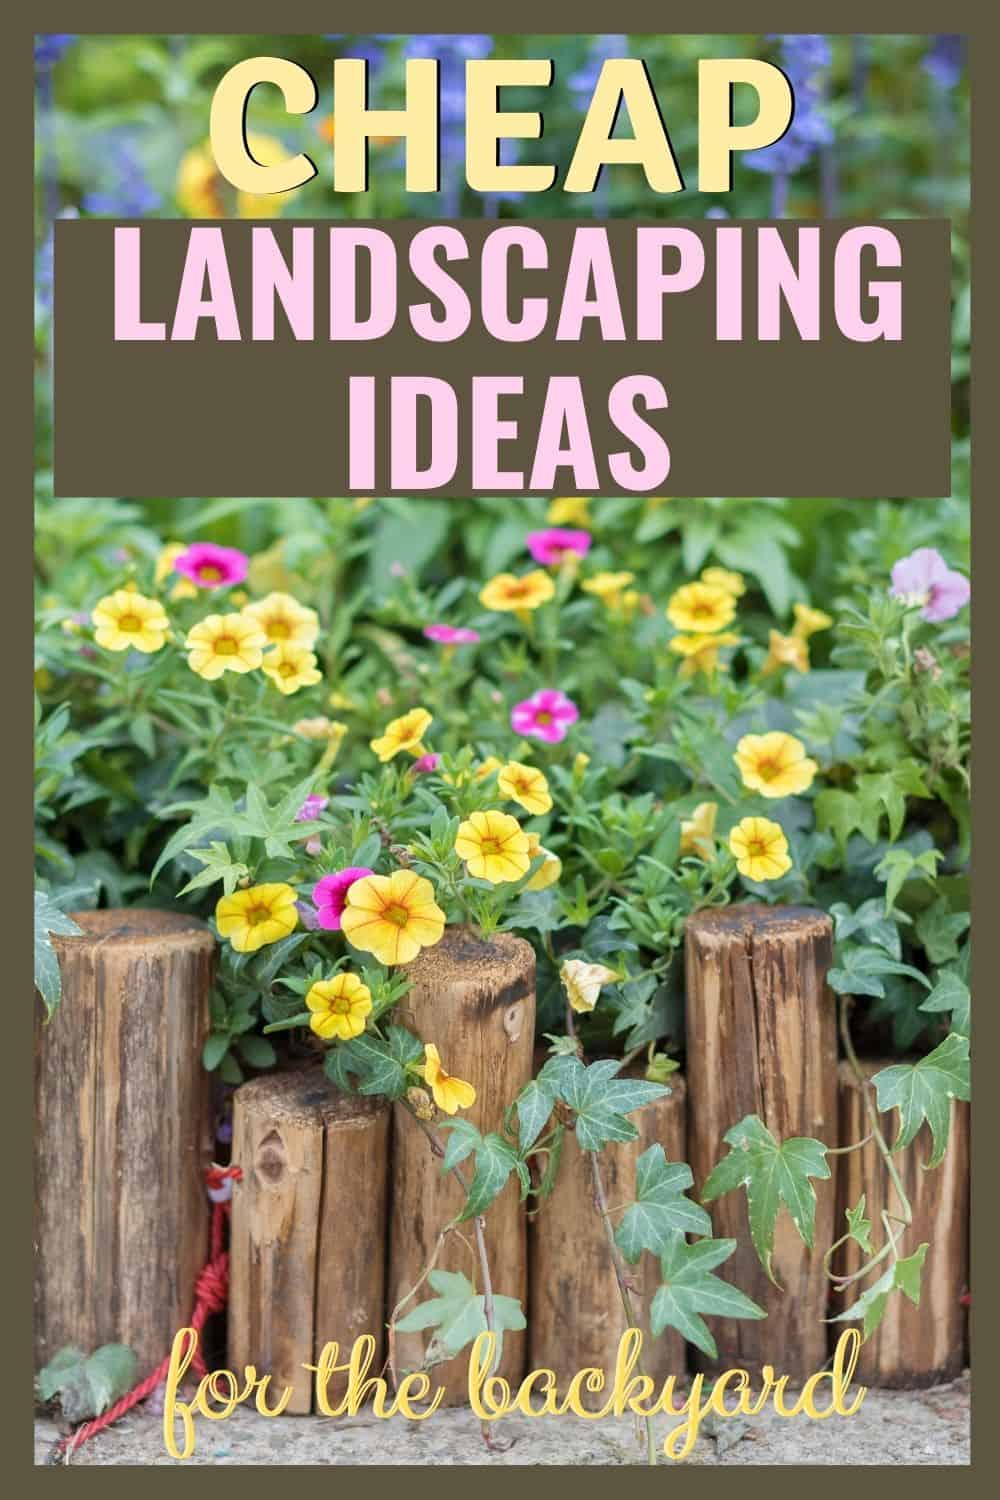 Cheap landscaping ideas for the backyard